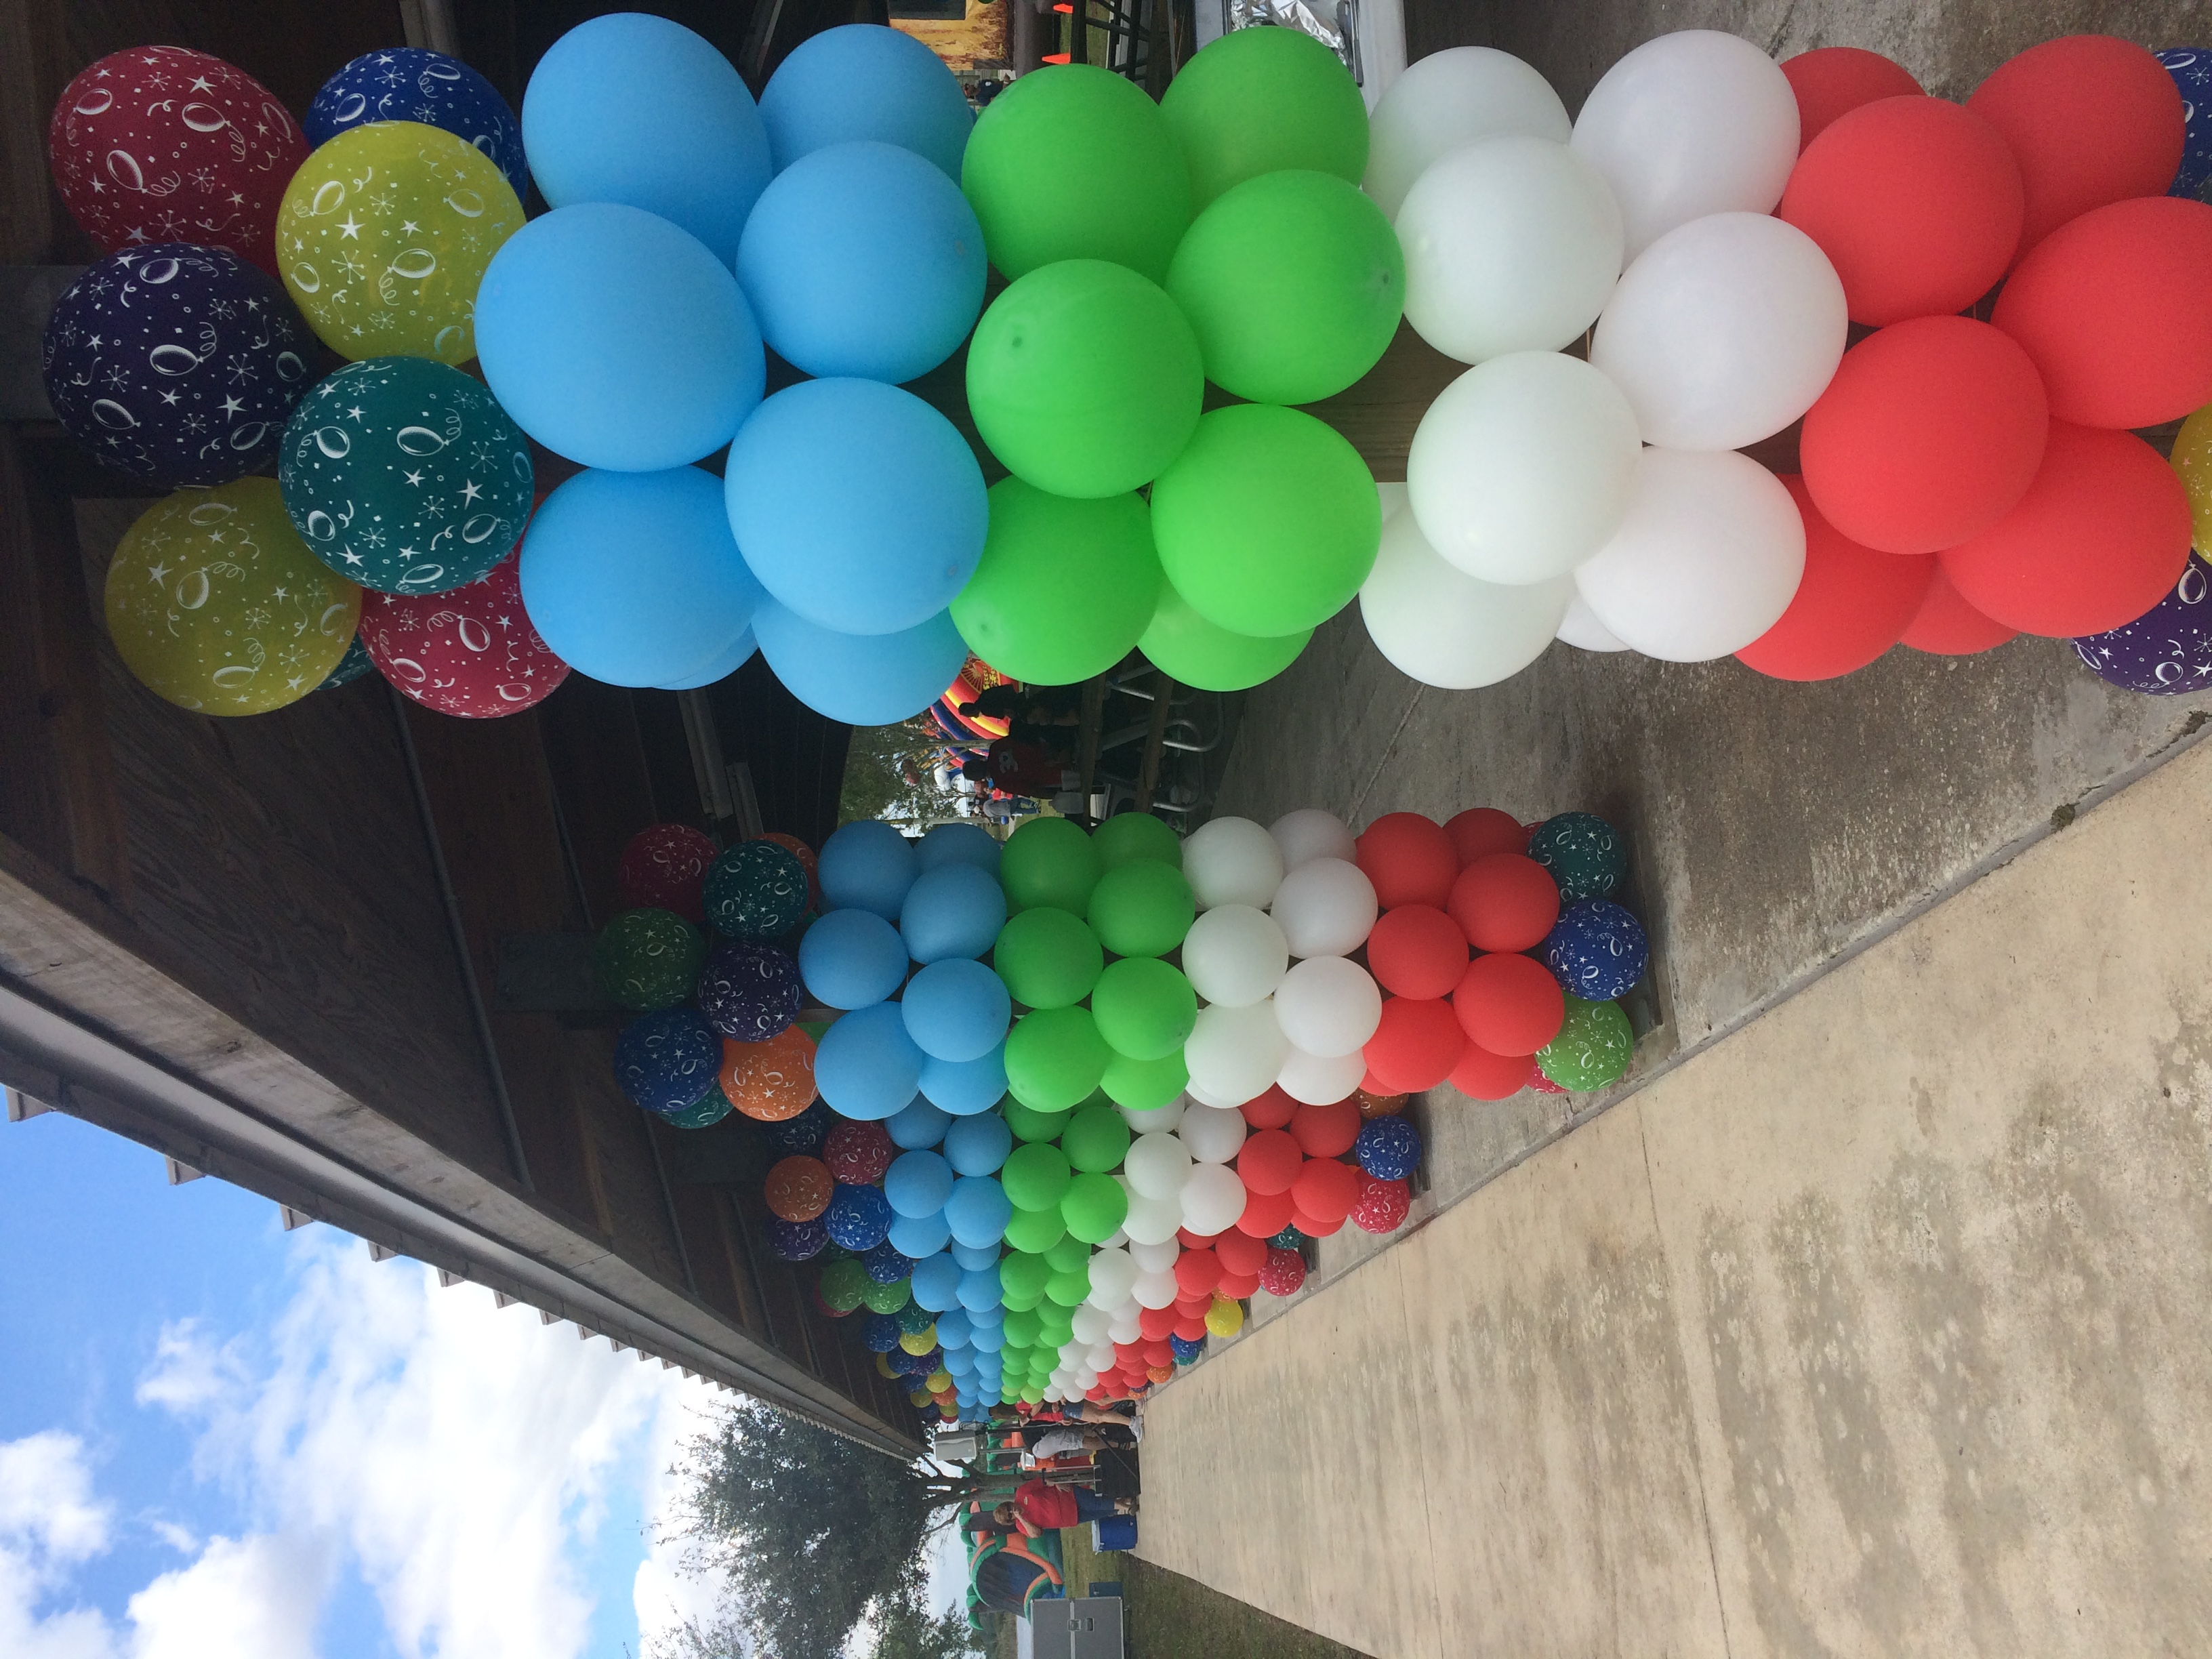 Park Pavilion Decorate with Balloons